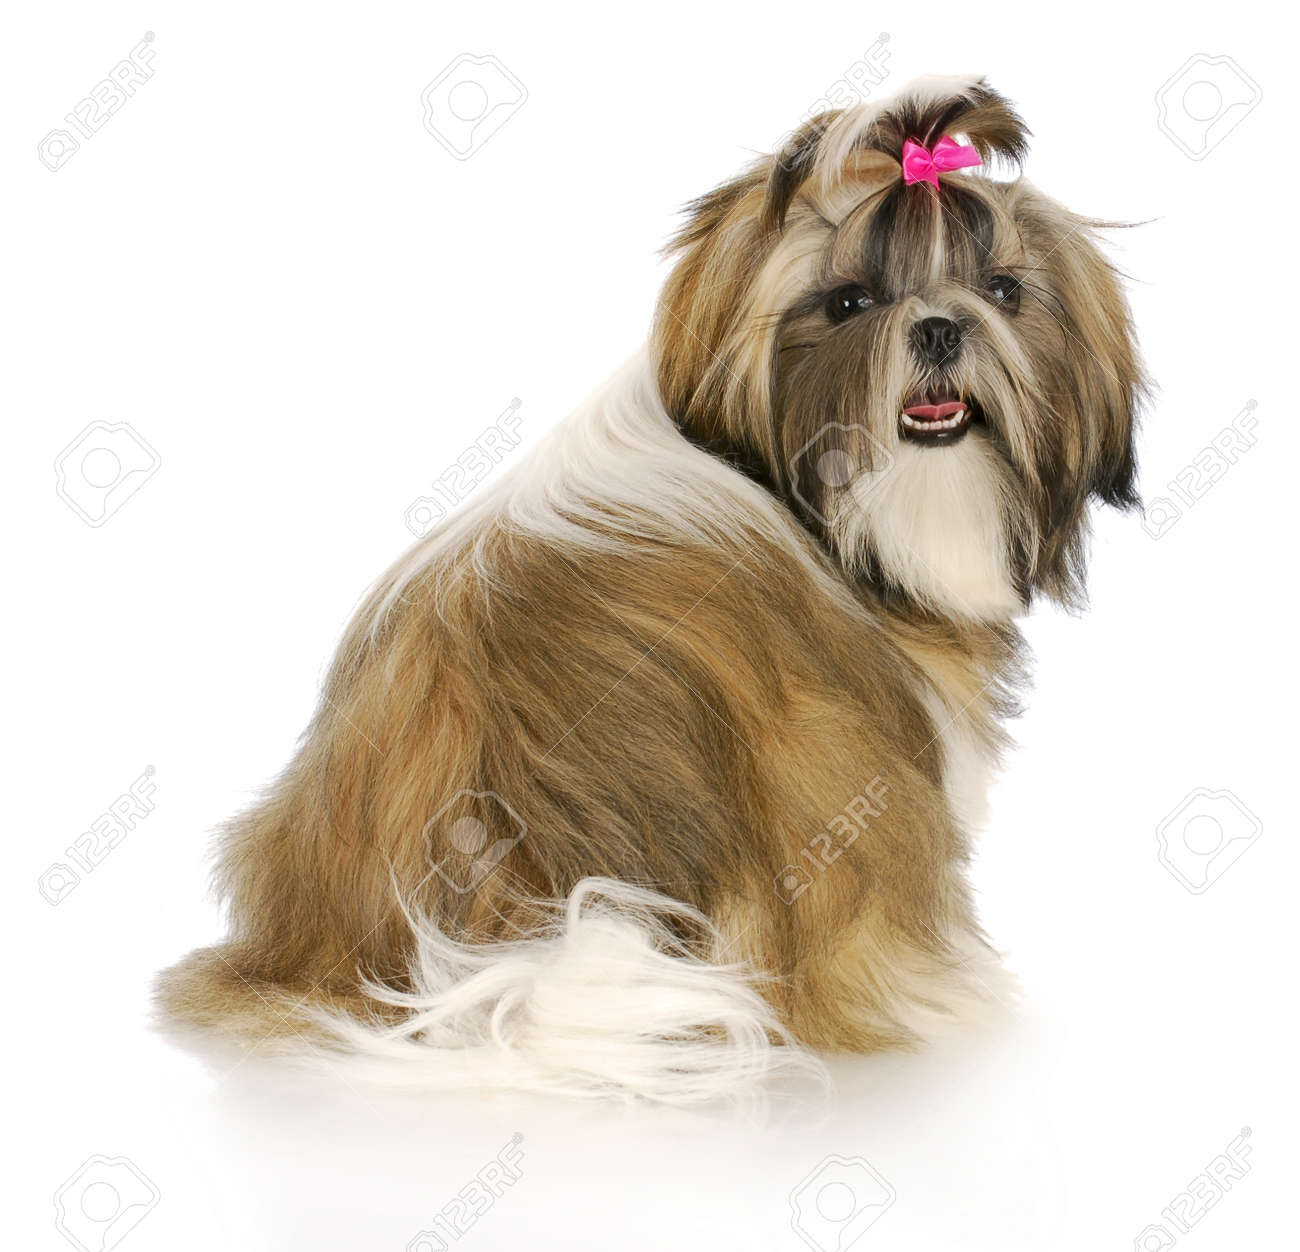 Download Puppies Bow Adorable Dog - 8481483-adorable-female-shih-tzu-puppy-with-pink-bow-in-hair-with-reflection-on-white-background  Gallery_74289  .jpg